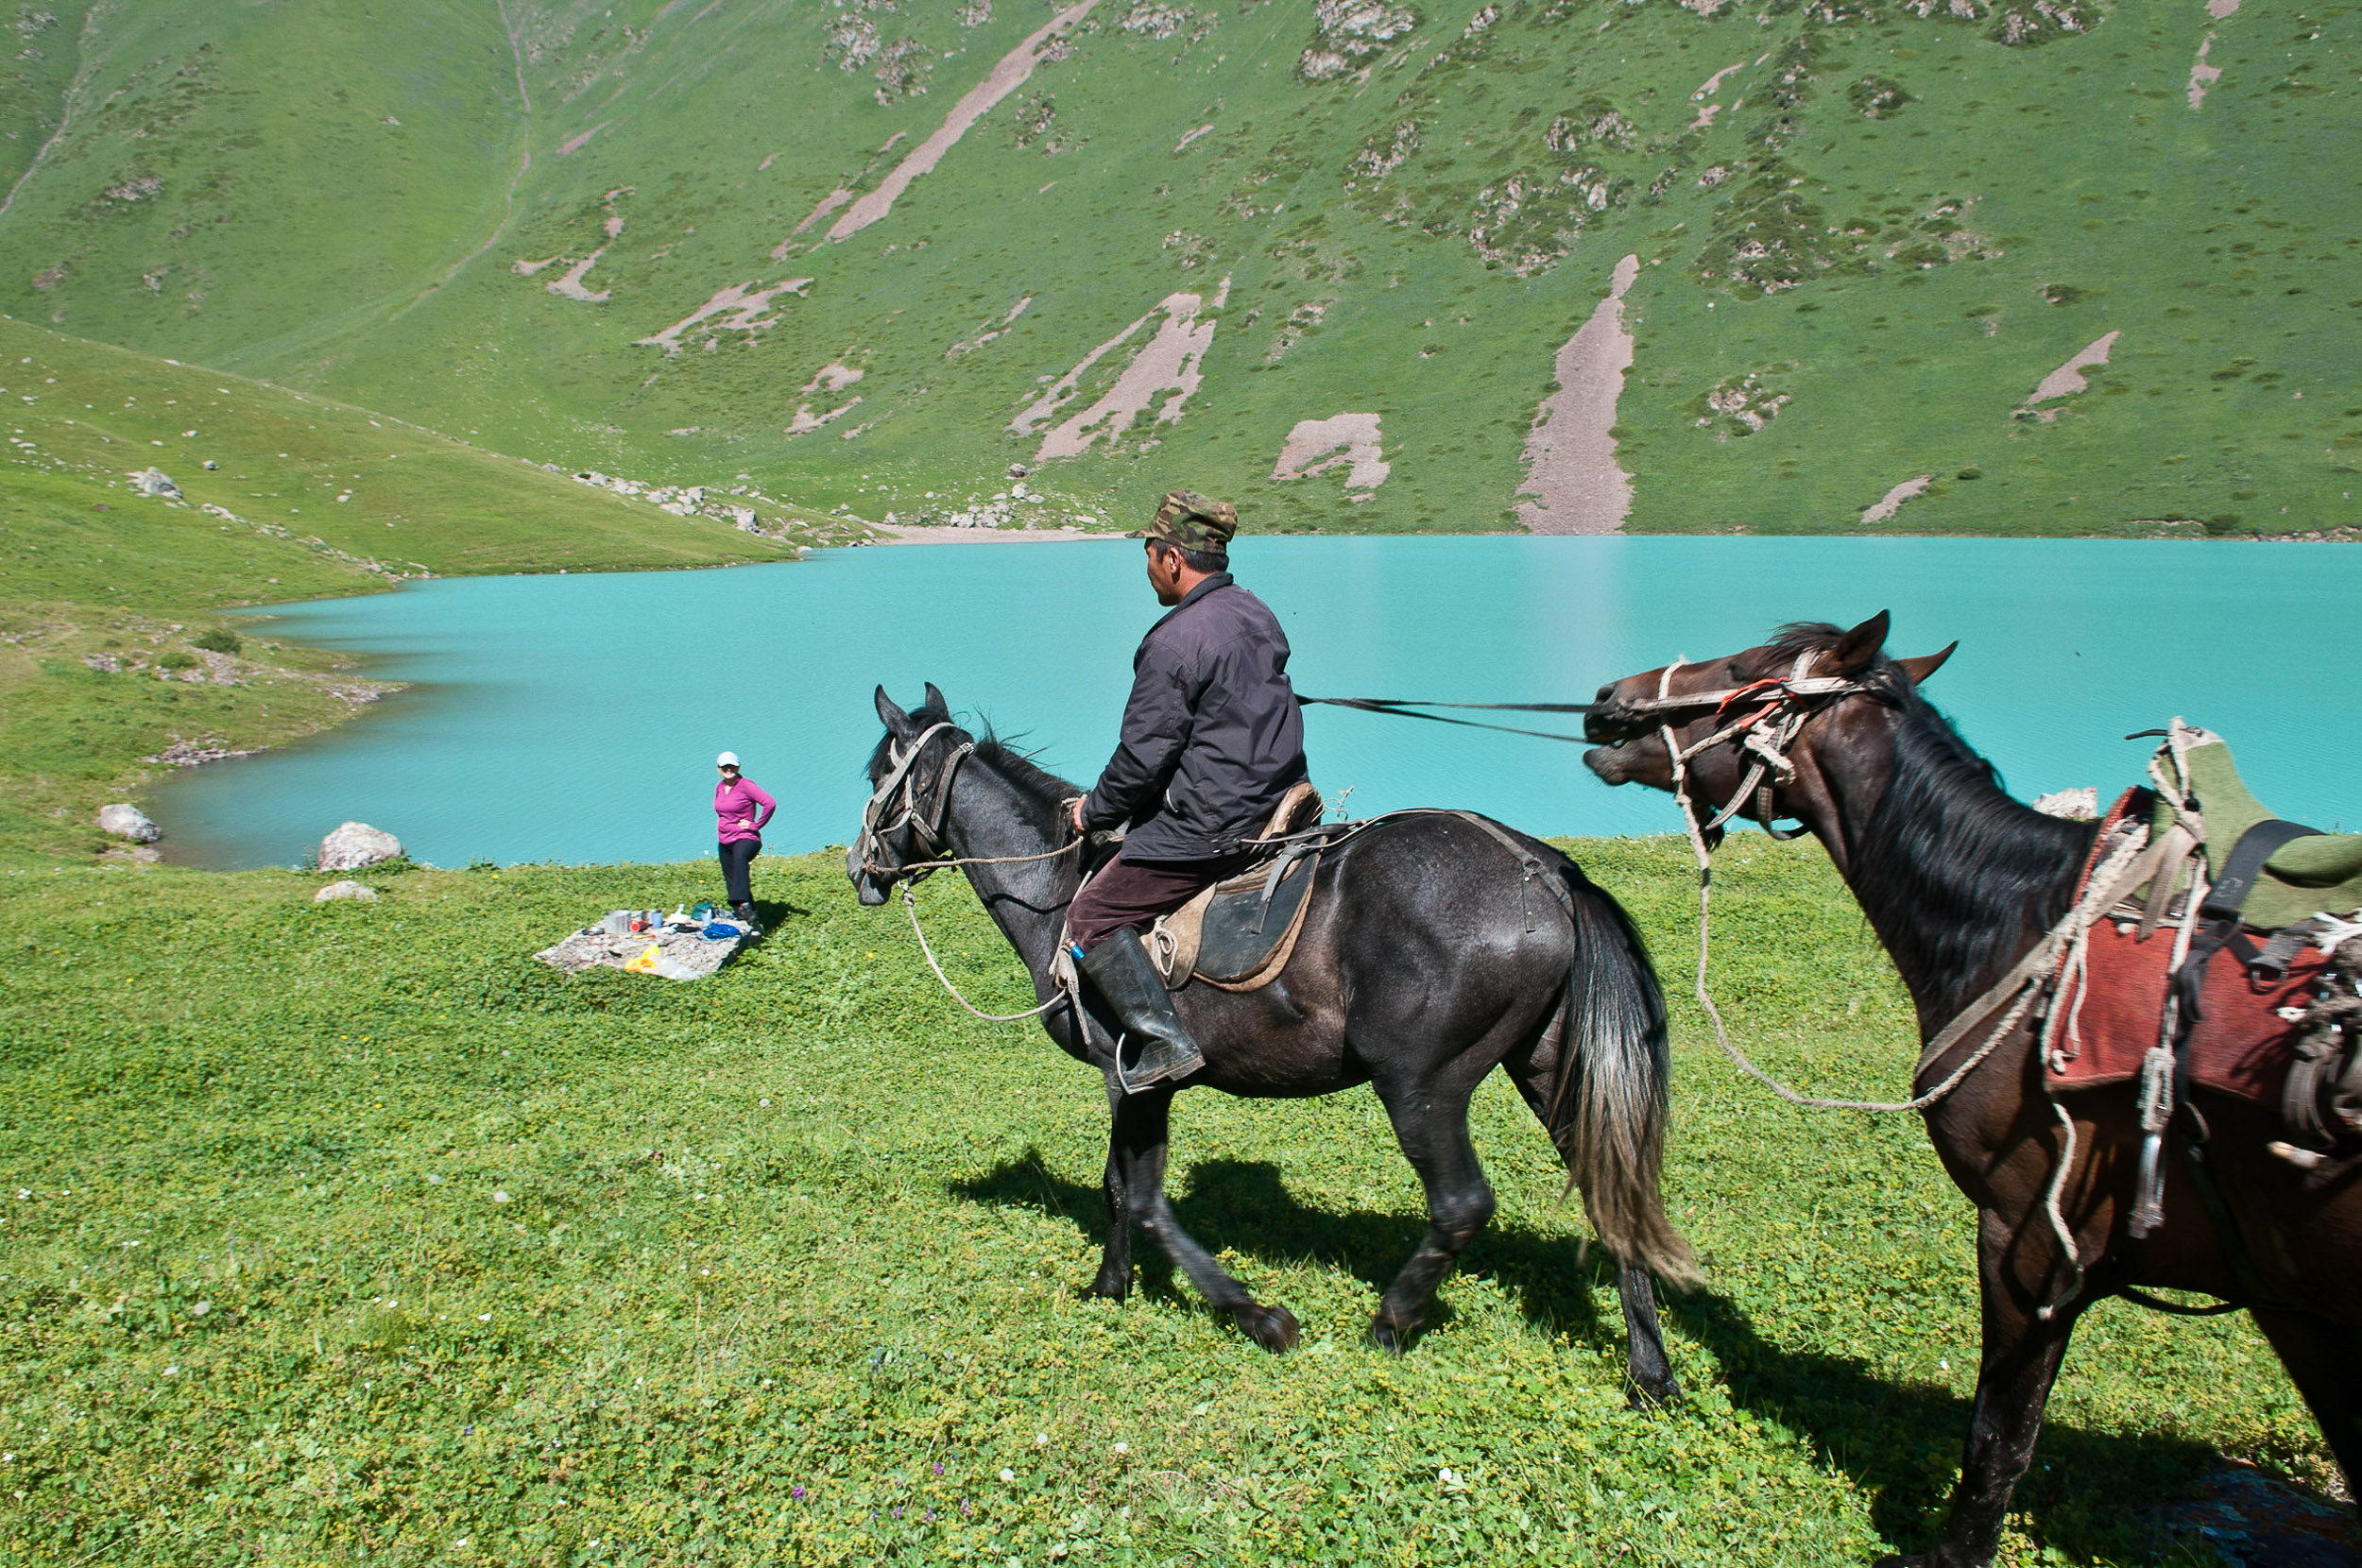 Horseman and horses in the mountains of Kyrgyzstan.